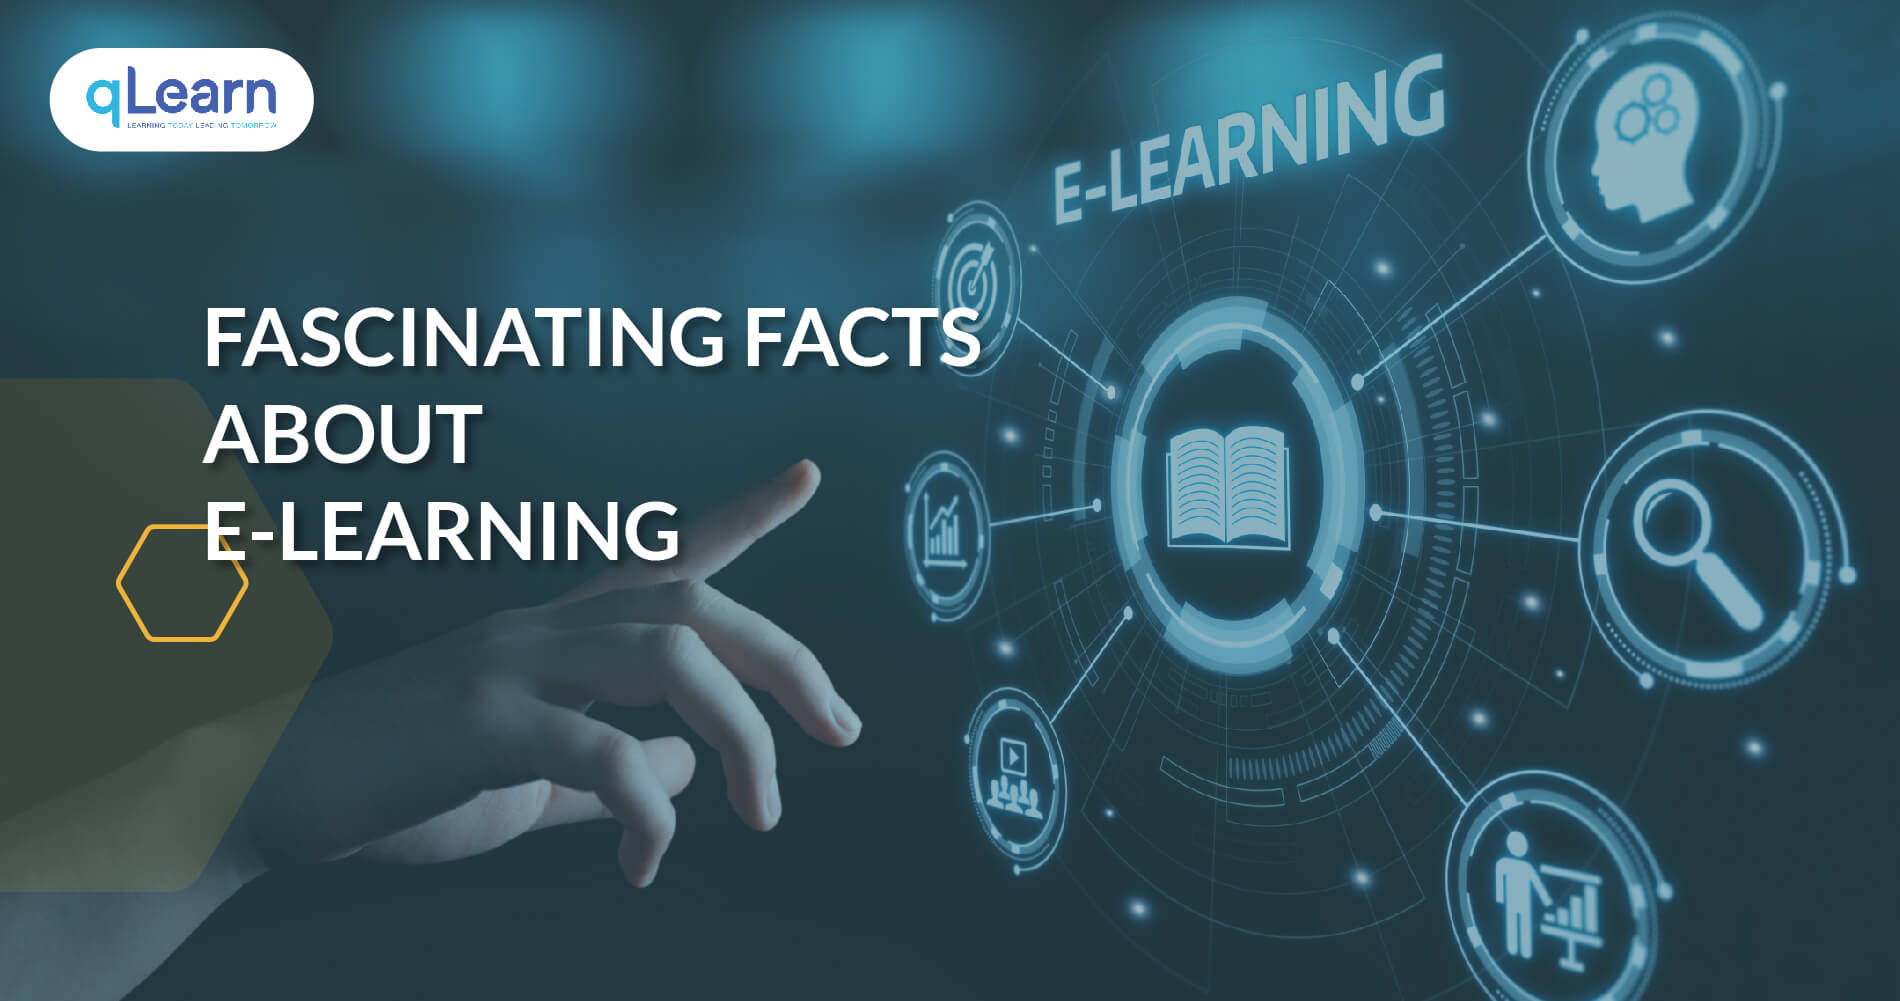 Fascinating Facts About E-Learning